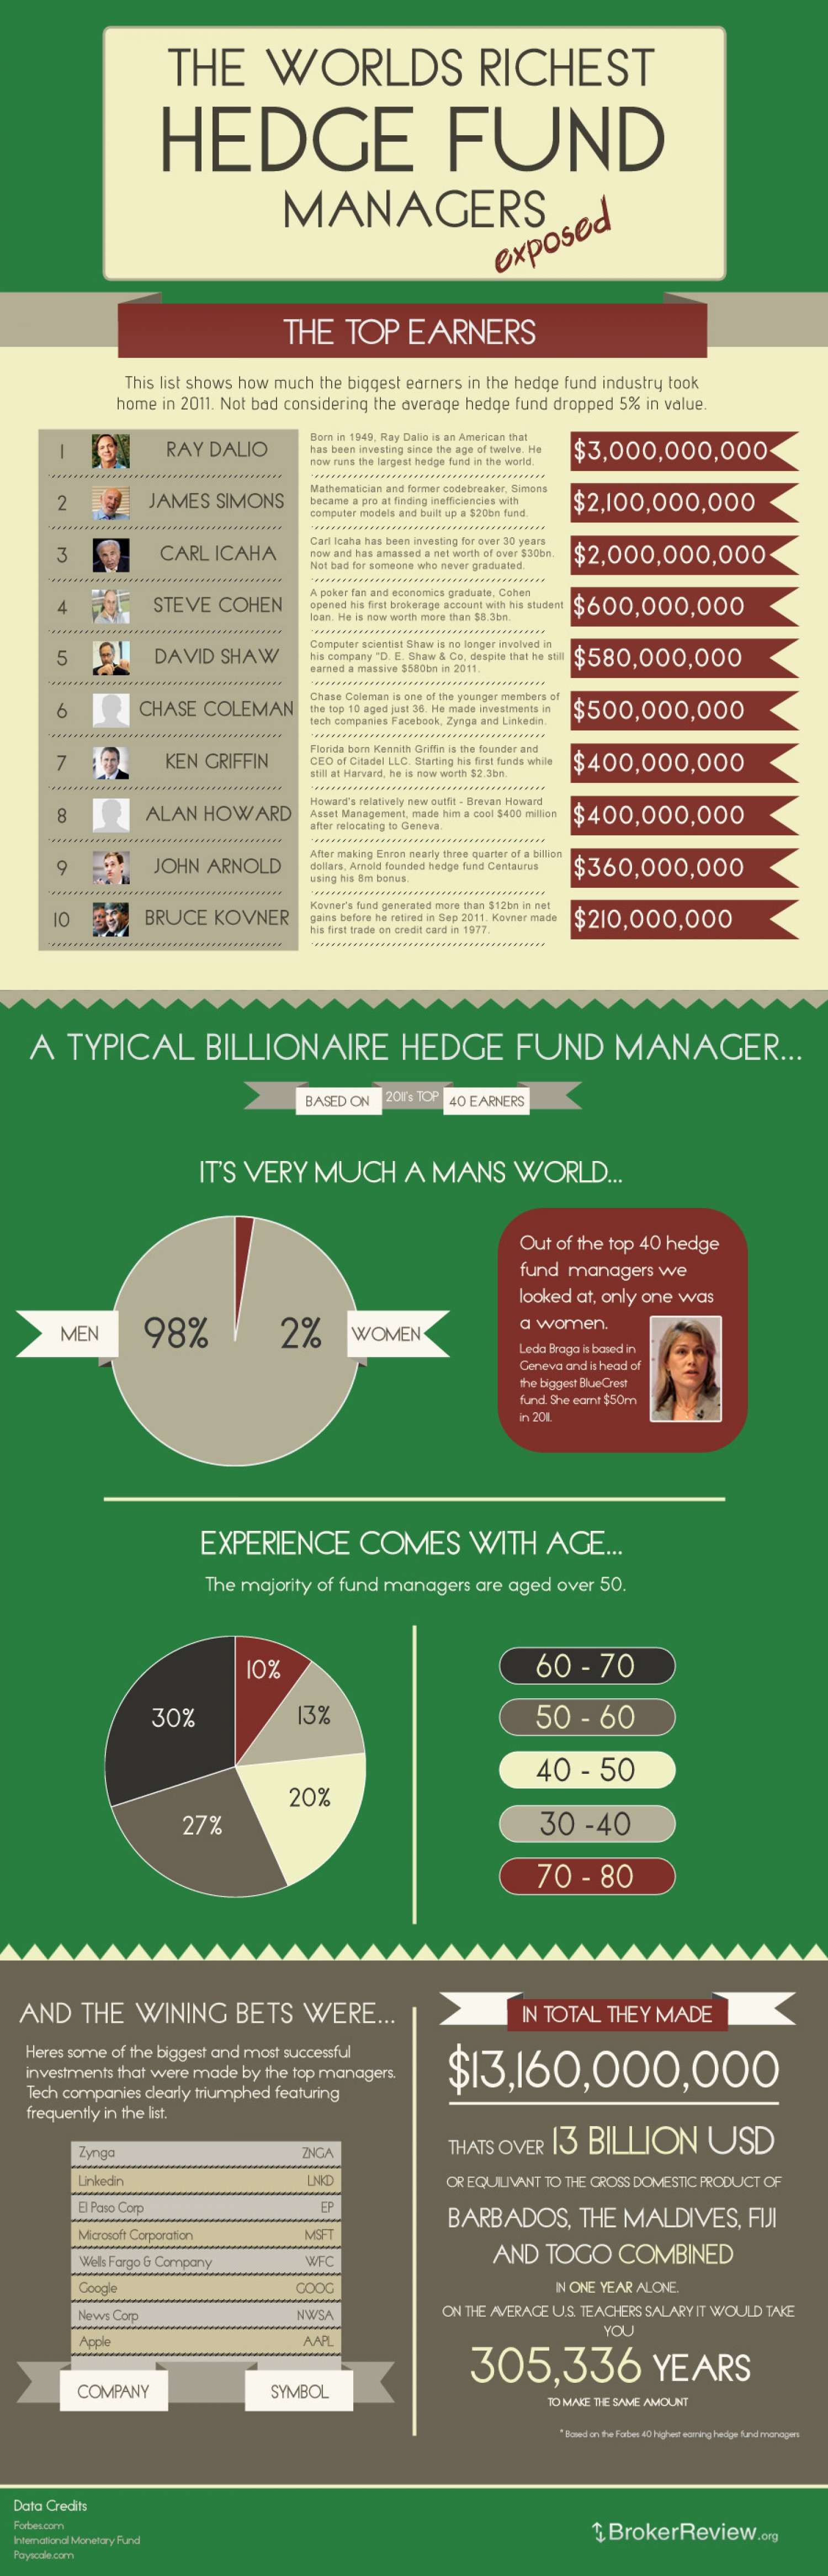 The Worlds Richest Hedge Fund Managers Exposed Visual Ly Hedge Fund Manager Richest In The World Management Infographic